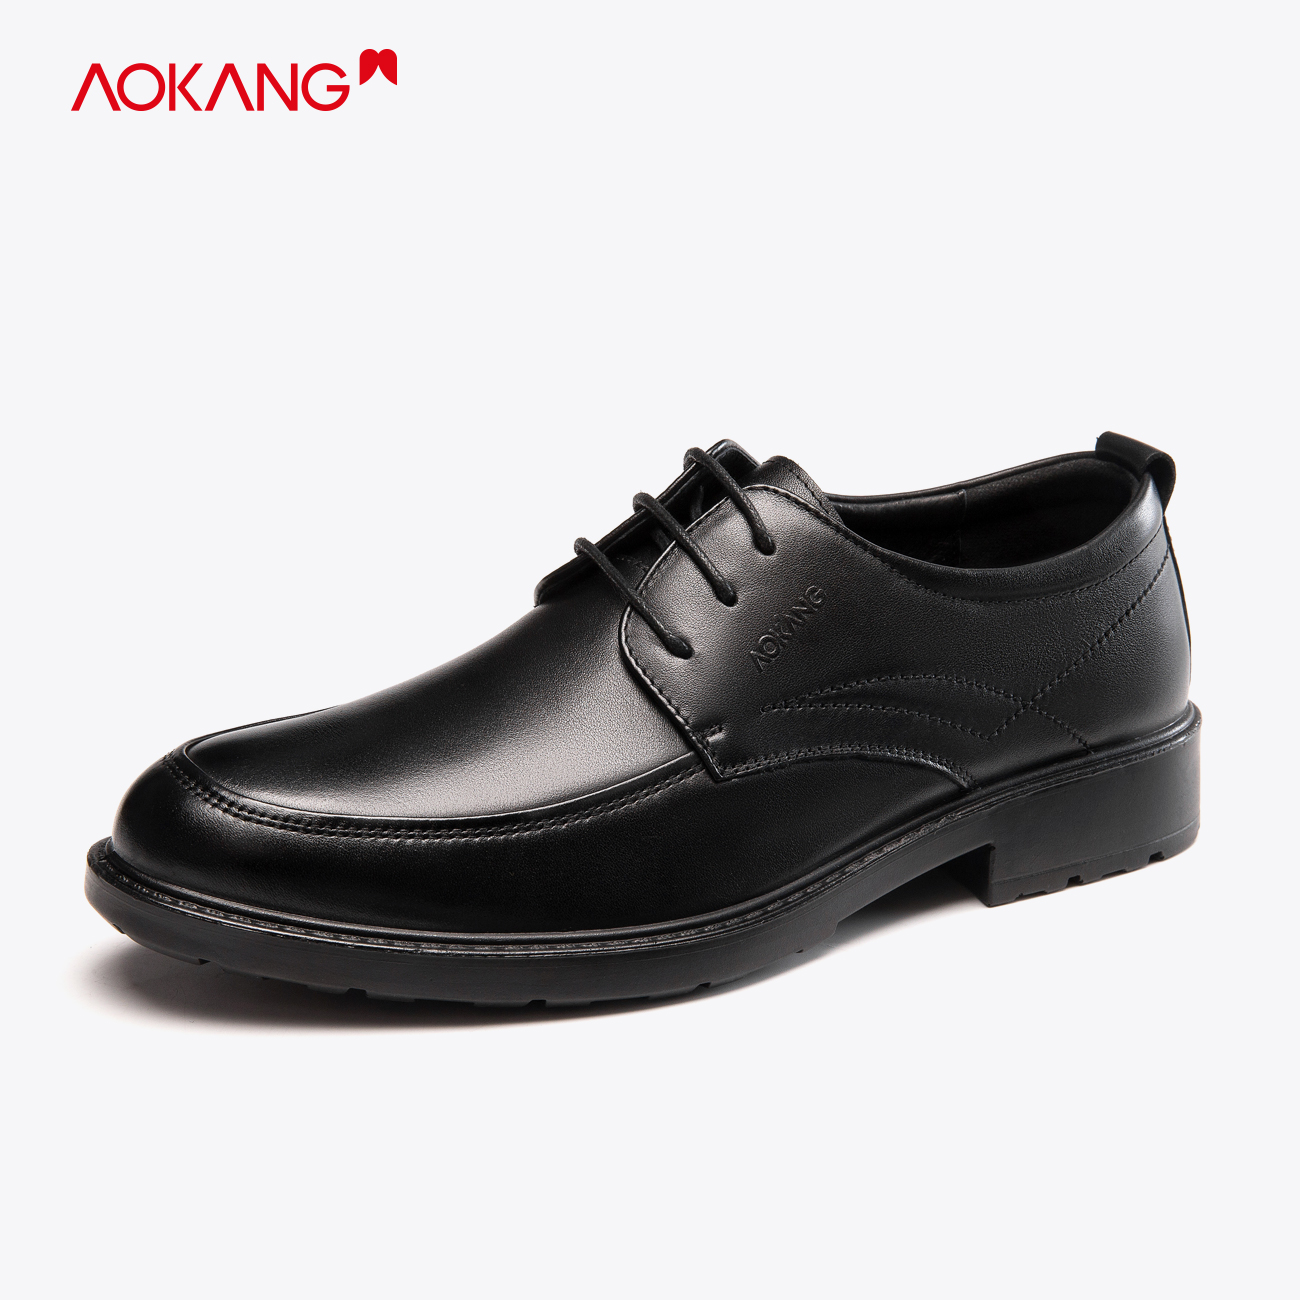 Oakon official flagship store leather shoes men commuter business suit leather shoes 100 sets of British style work men's shoes